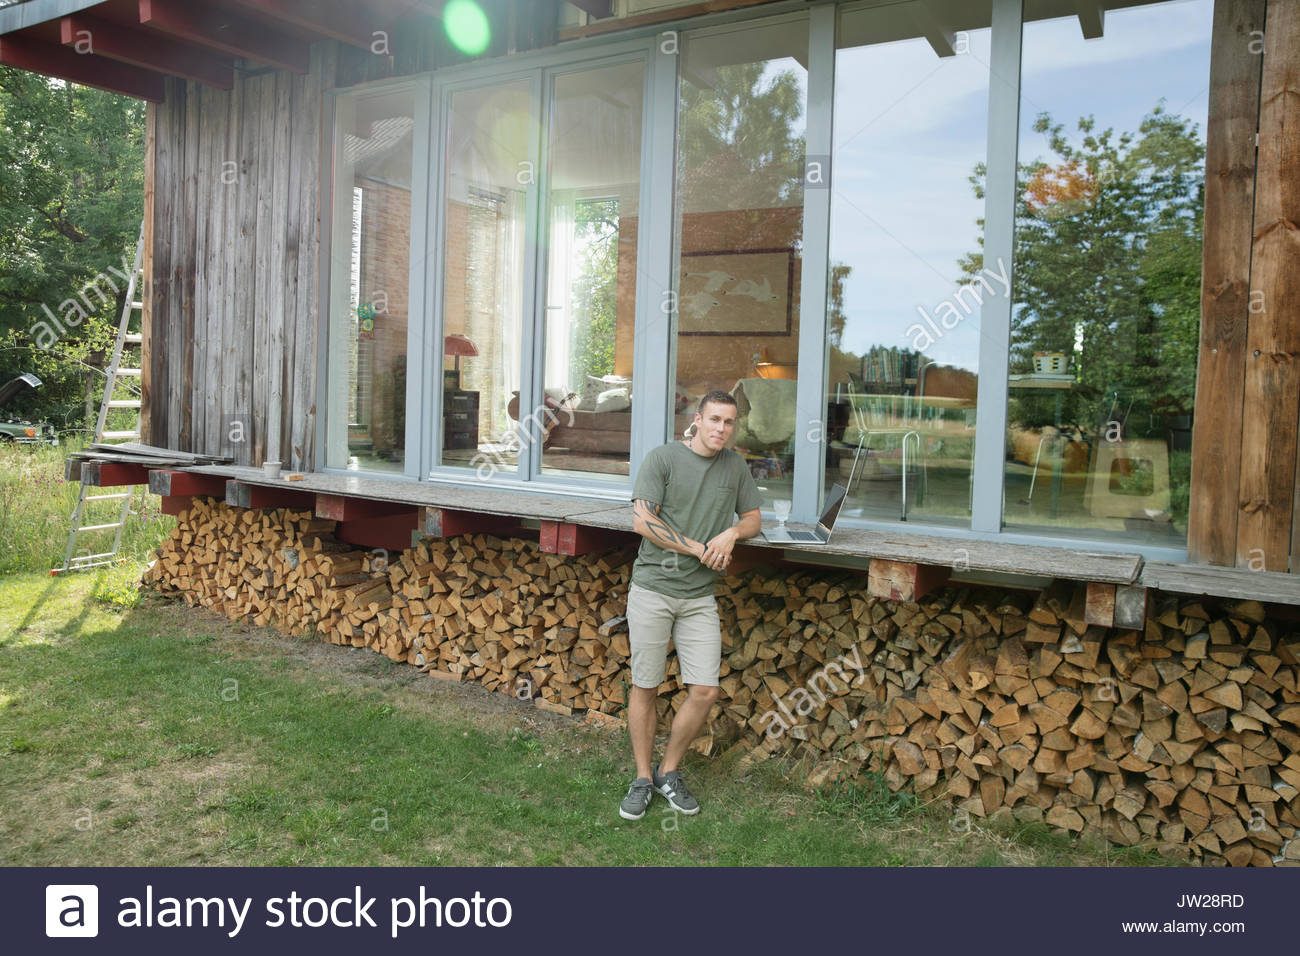 Portrait young man with laptop on wood cabin patio above firewood - Stock Image